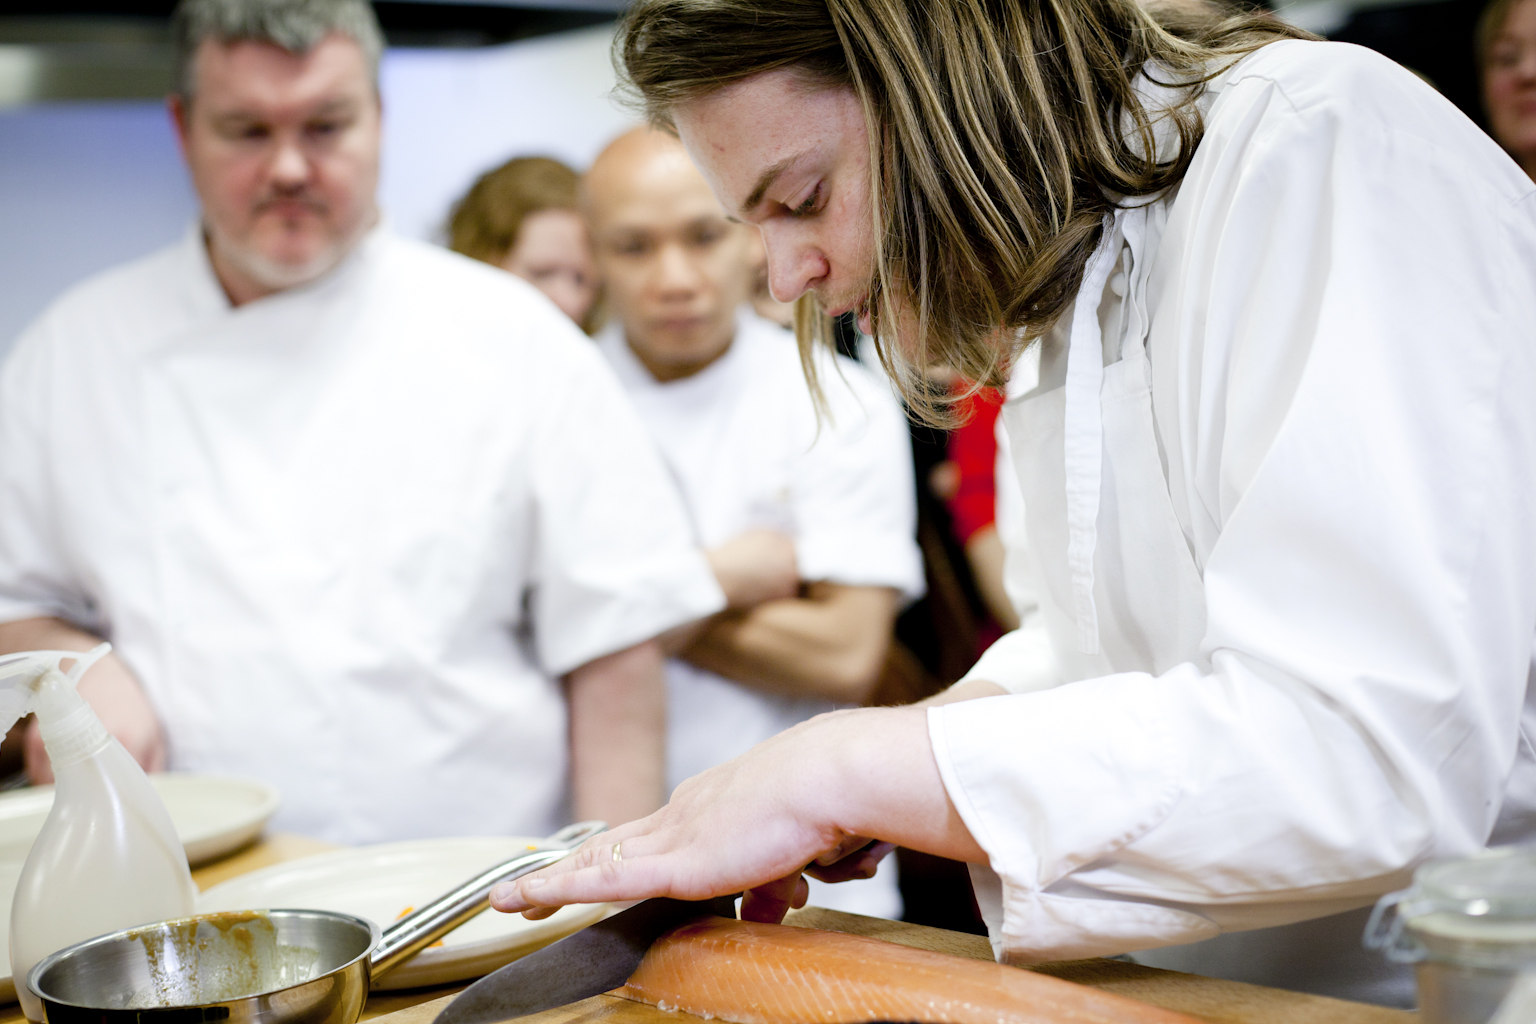 cooking event with well-known chefs, electrolux chefs, great kitchen appliances